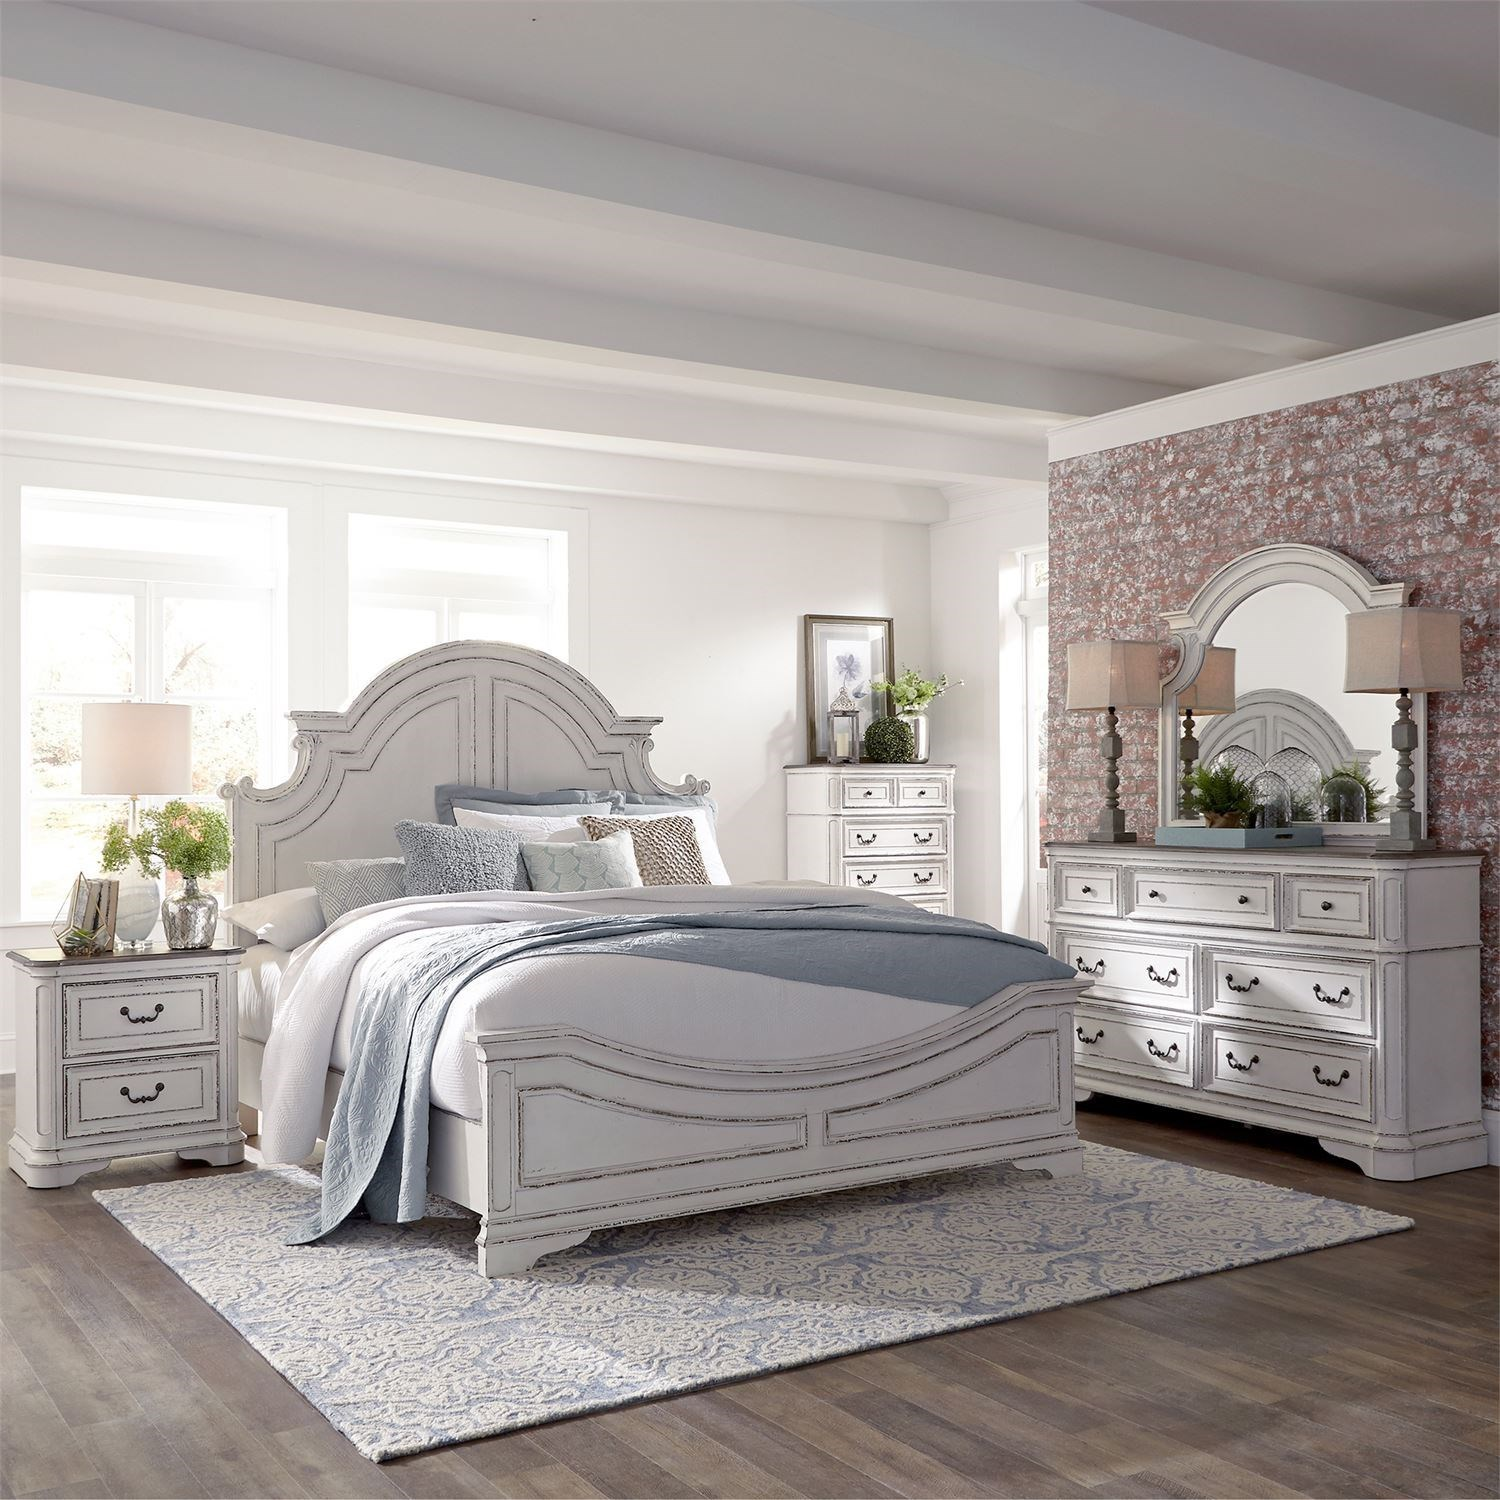 Magnolia Manor Queen Bedroom Group by Liberty Furniture at Suburban Furniture